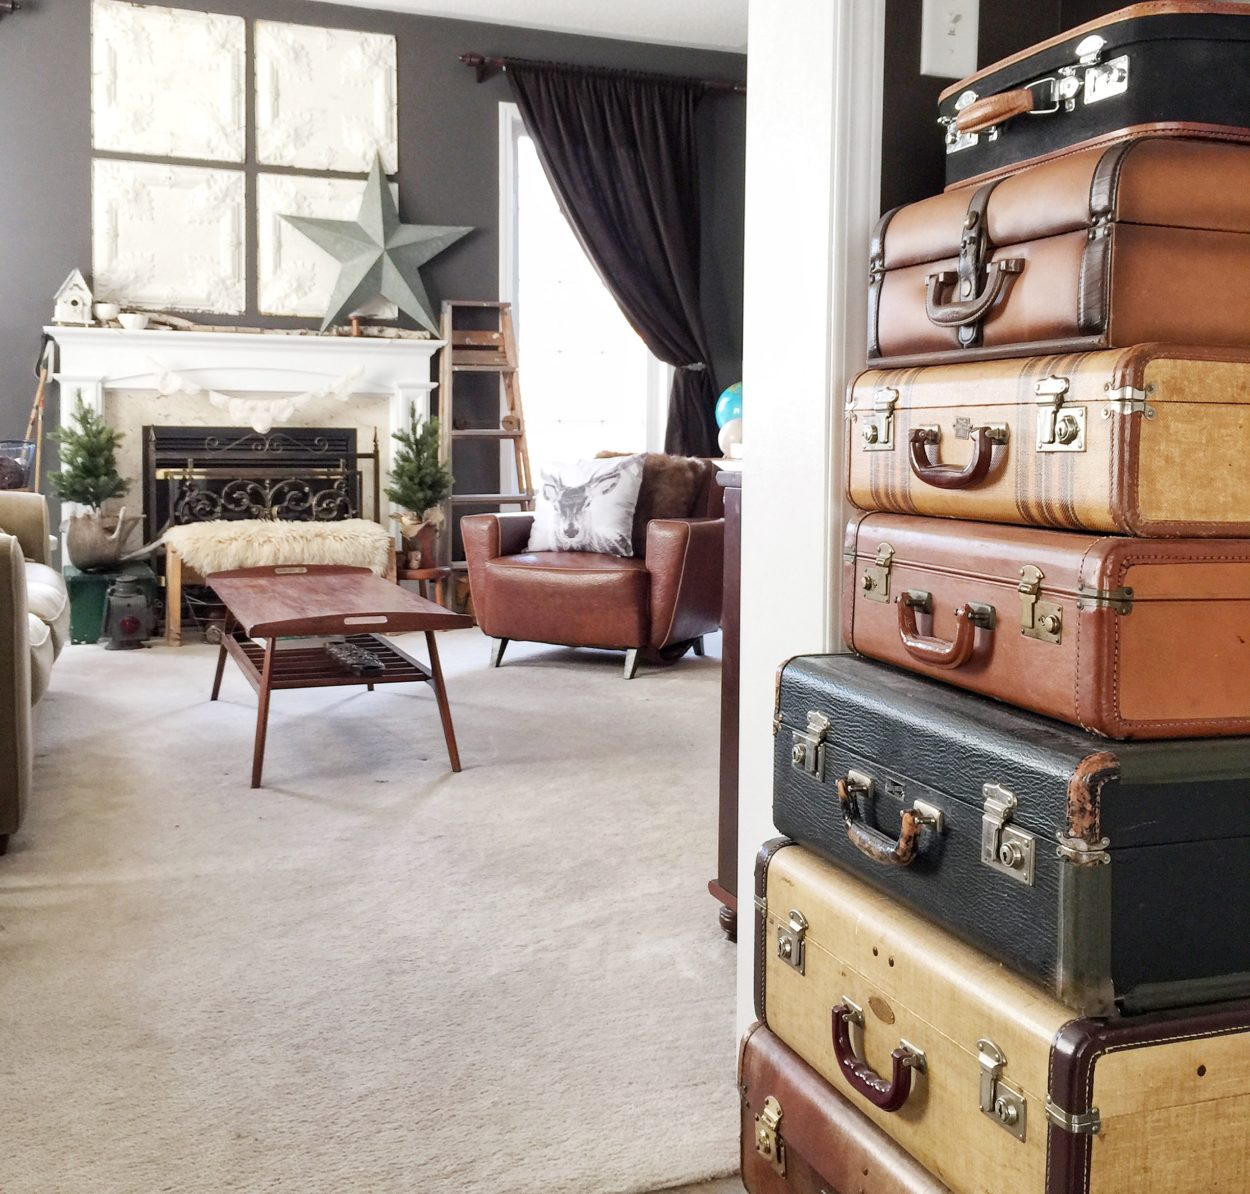 A collection of vintage suitcases is a great bargain decor item. Look for that at flea markets, thrift stores, and yard sales. Come see this vintage home tour for lots more home decor inspiration. Interior design